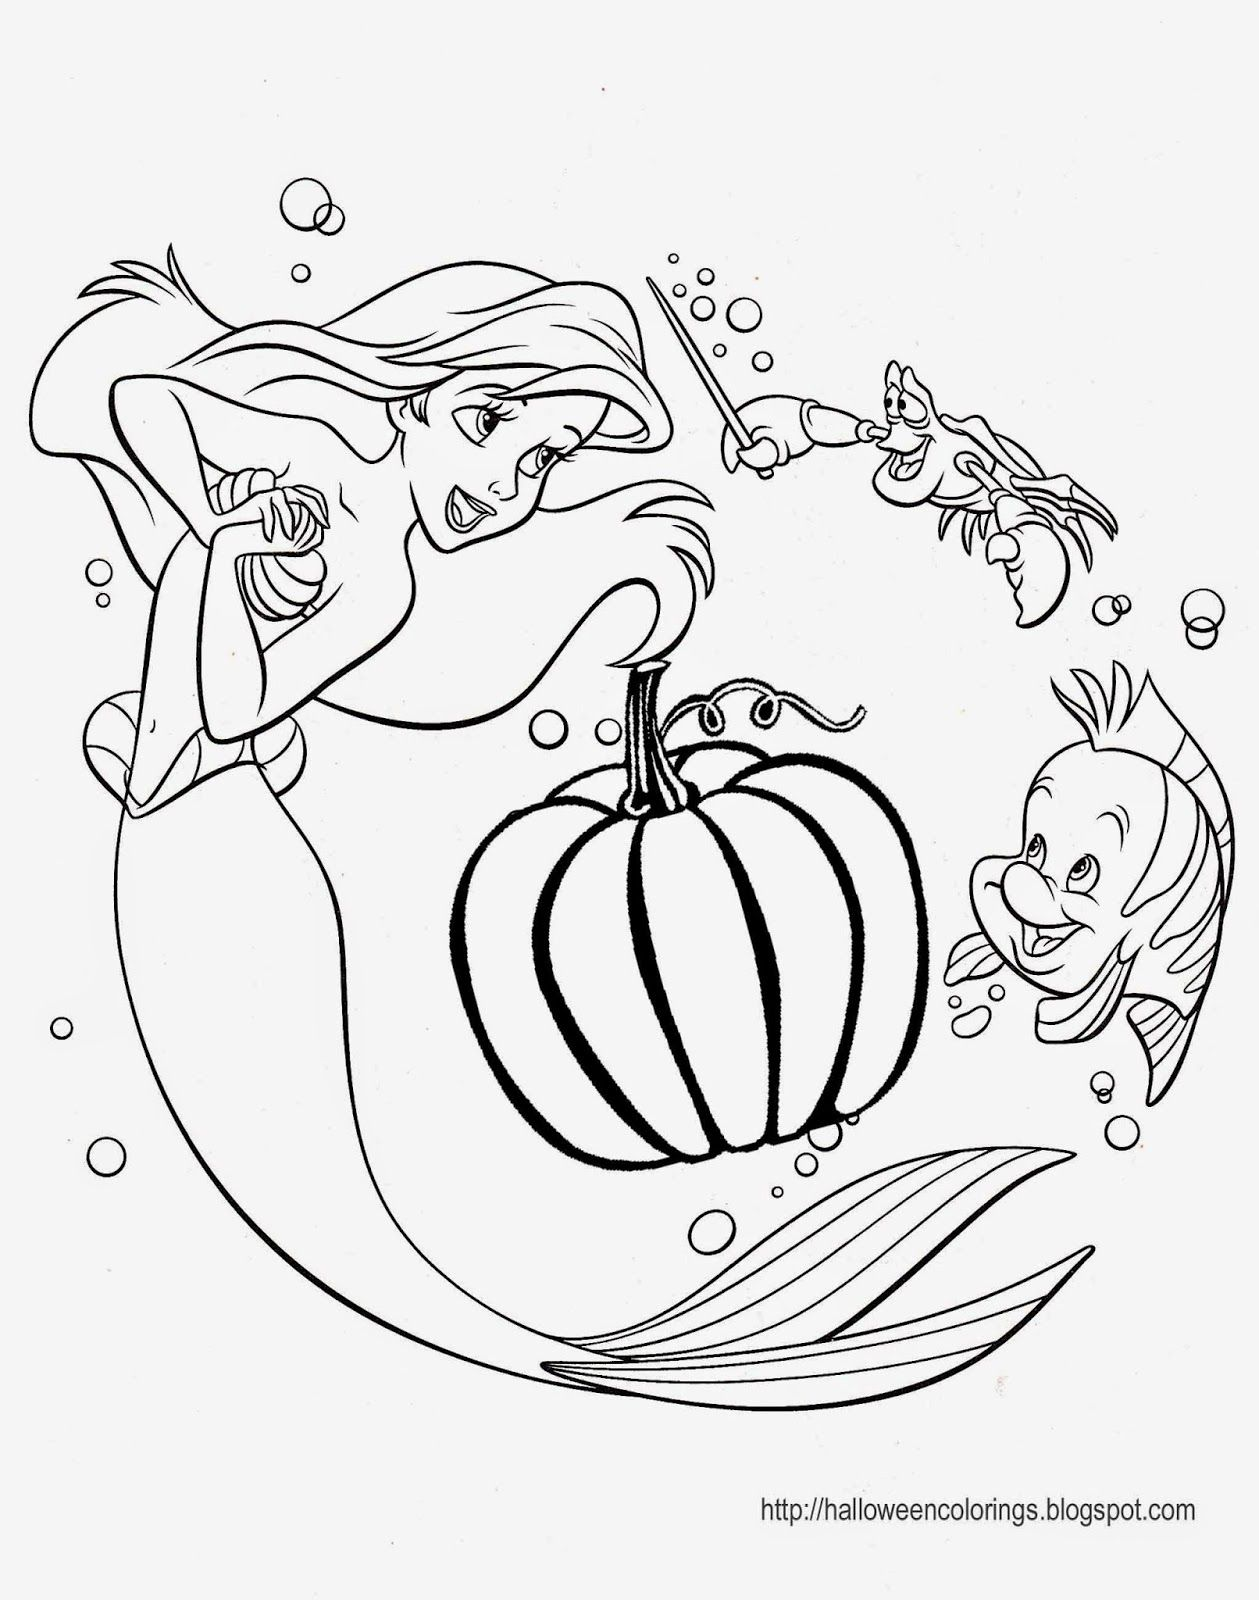 Coloring Pages Halloween Pdf : Halloween princess coloring pages home